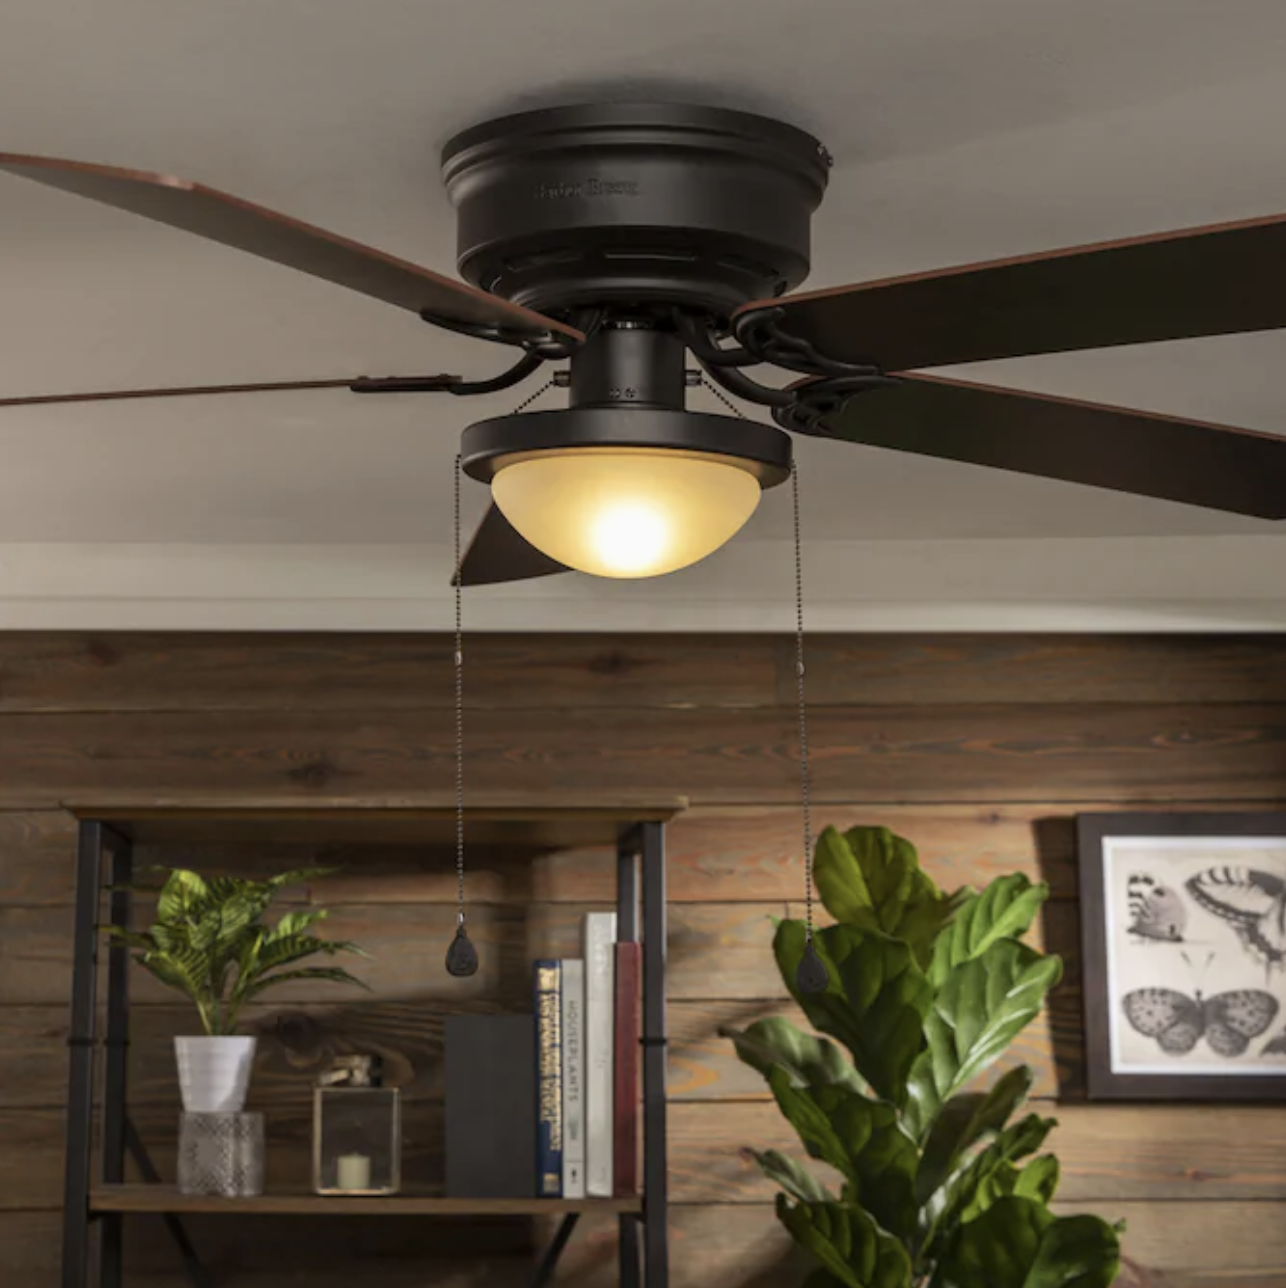 112cm 44 Flush Mount Outdoor Ceiling Fan Without Light Fanimation Hugh Bronze For Sale Online Ebay